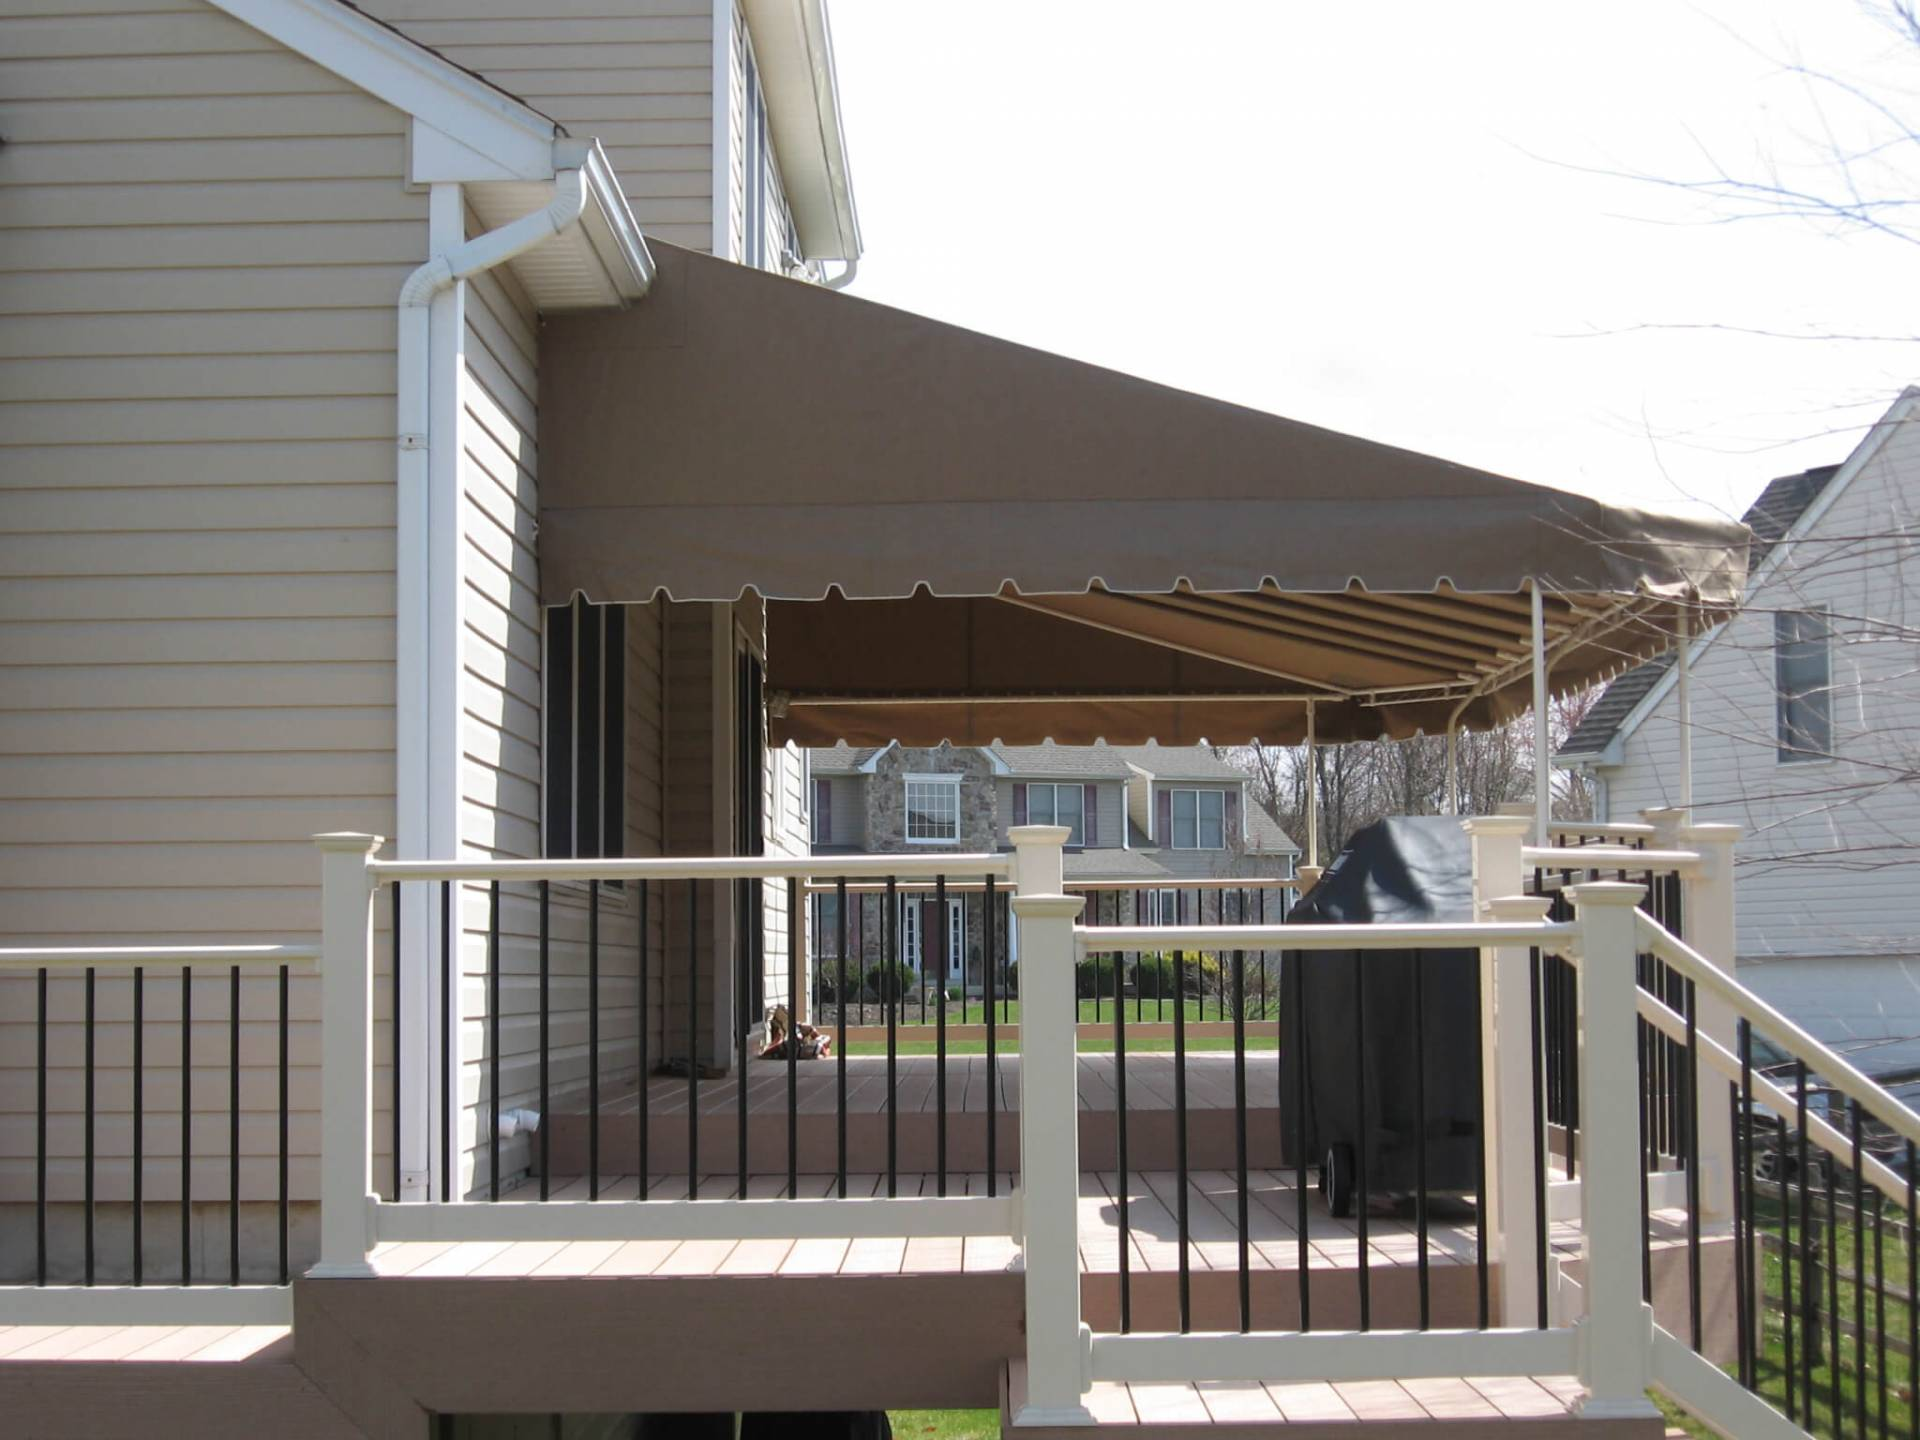 ideas co sun awning uk pictures from awnings patio online direct decks stationary luxury patioawning for